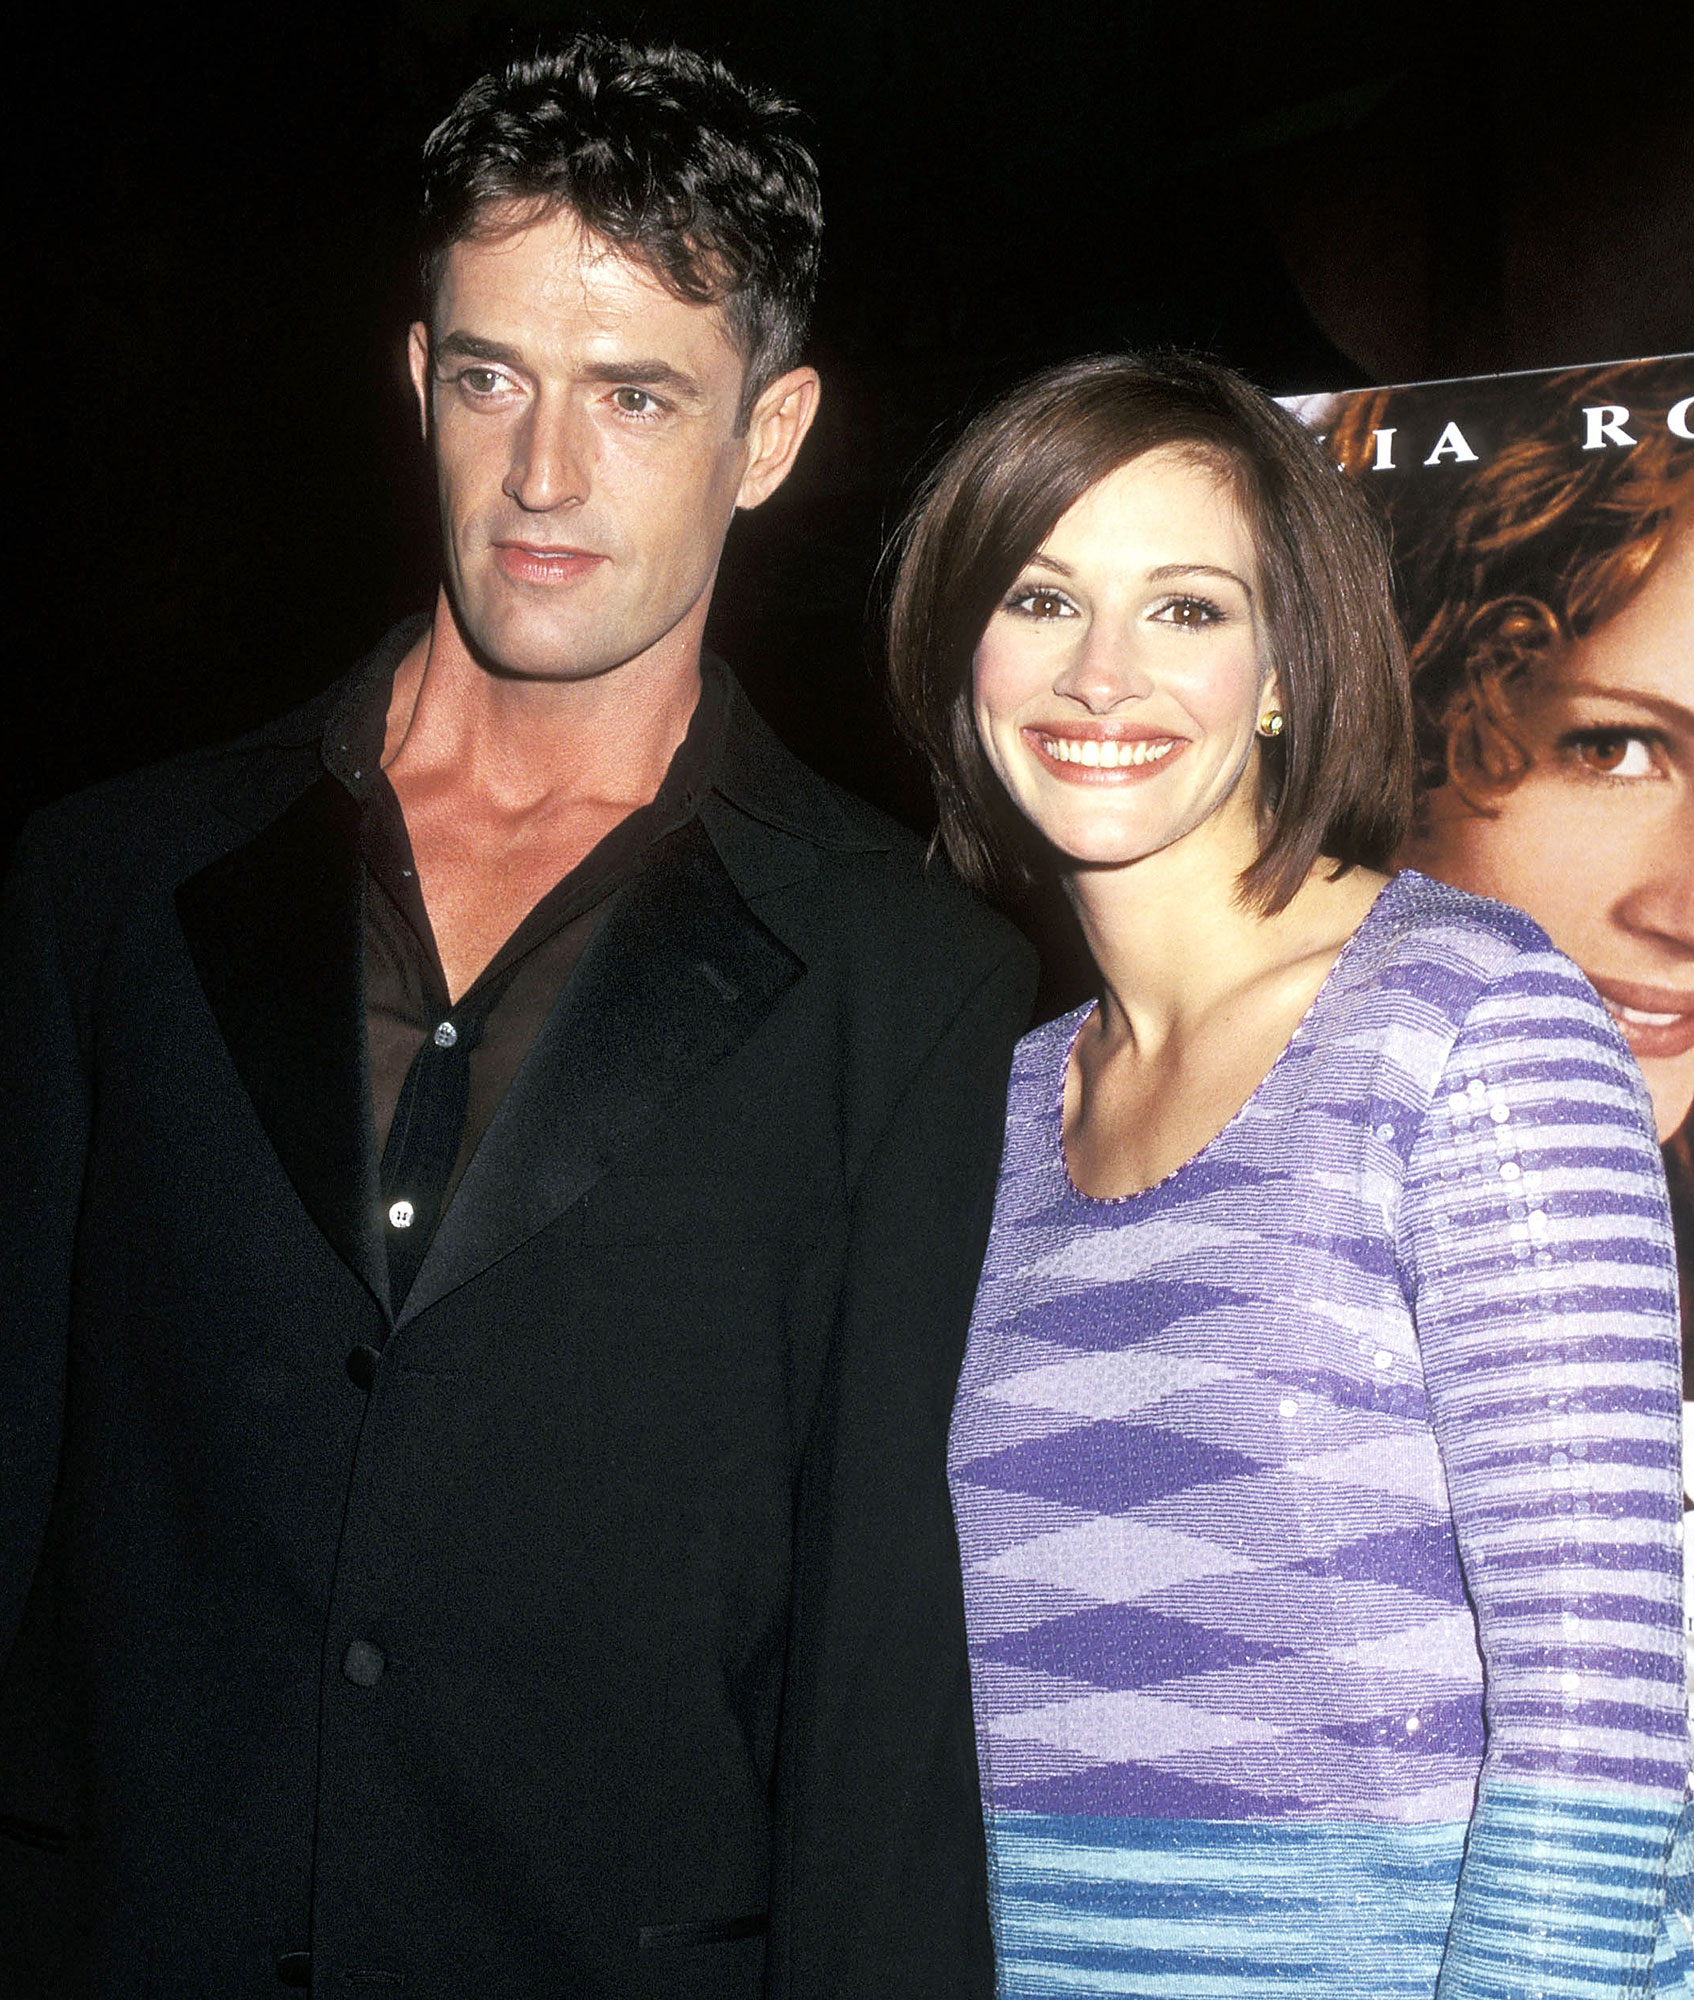 Rupert Everett Julia Roberts My Best Friend's Wedding Reunion Premiere - Rupert Everett and Julia Roberts attend the premiere for 'My Best Friend's Wedding' on June 17, 1997 in New York City.